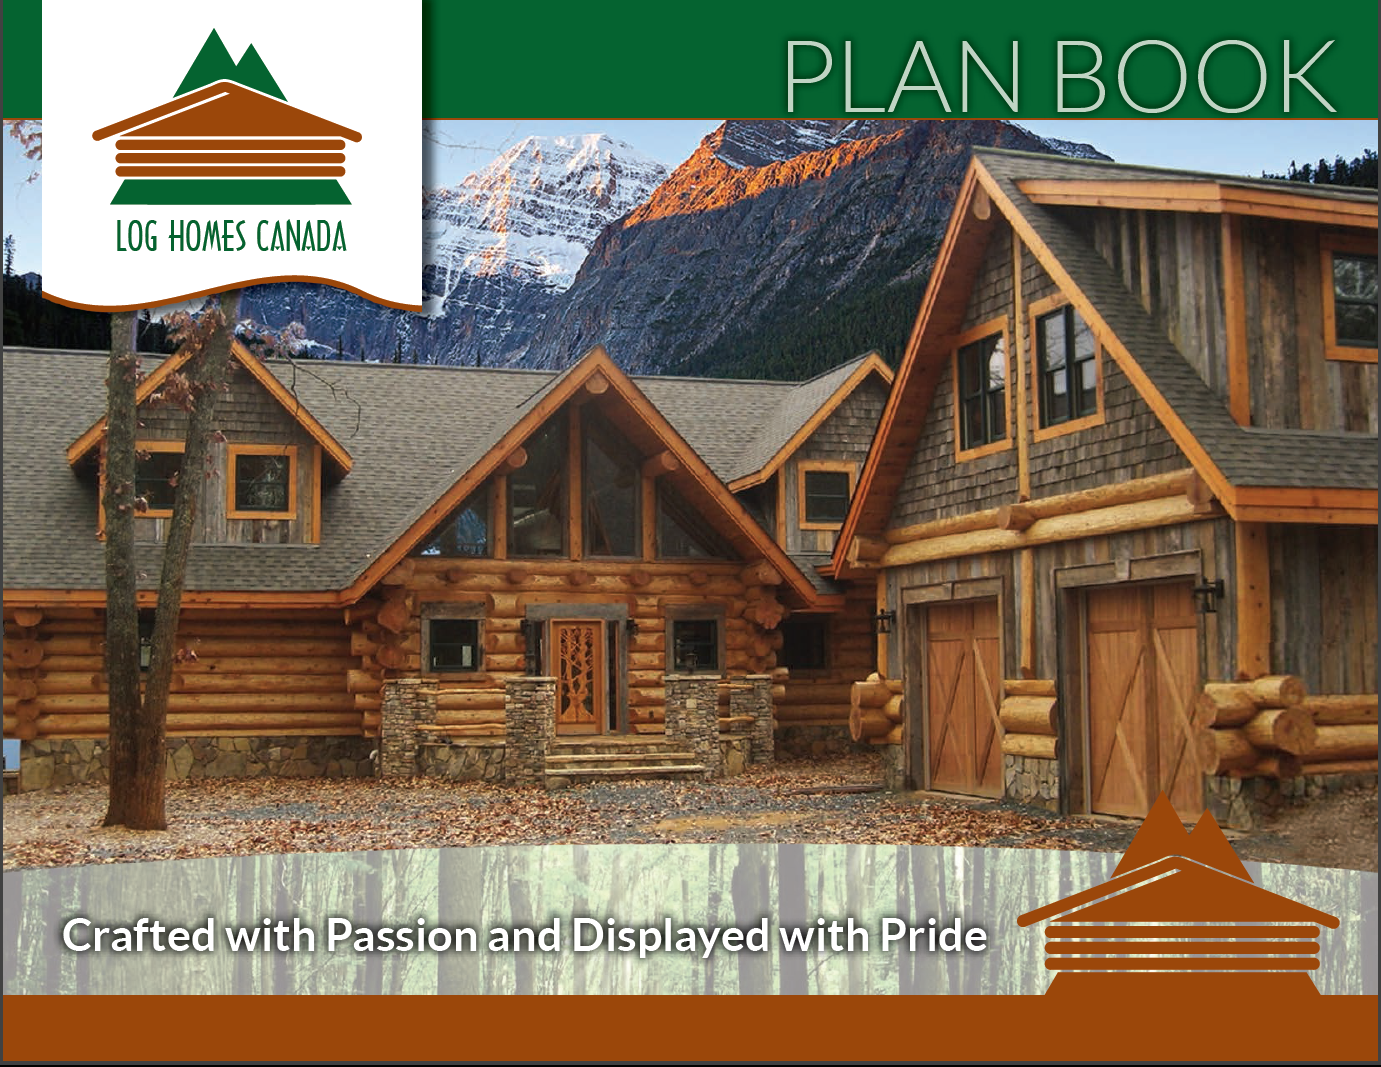 Terrific Photographs Affordable Log Homes Suggestions Log Homes Log Home Plans Cabin